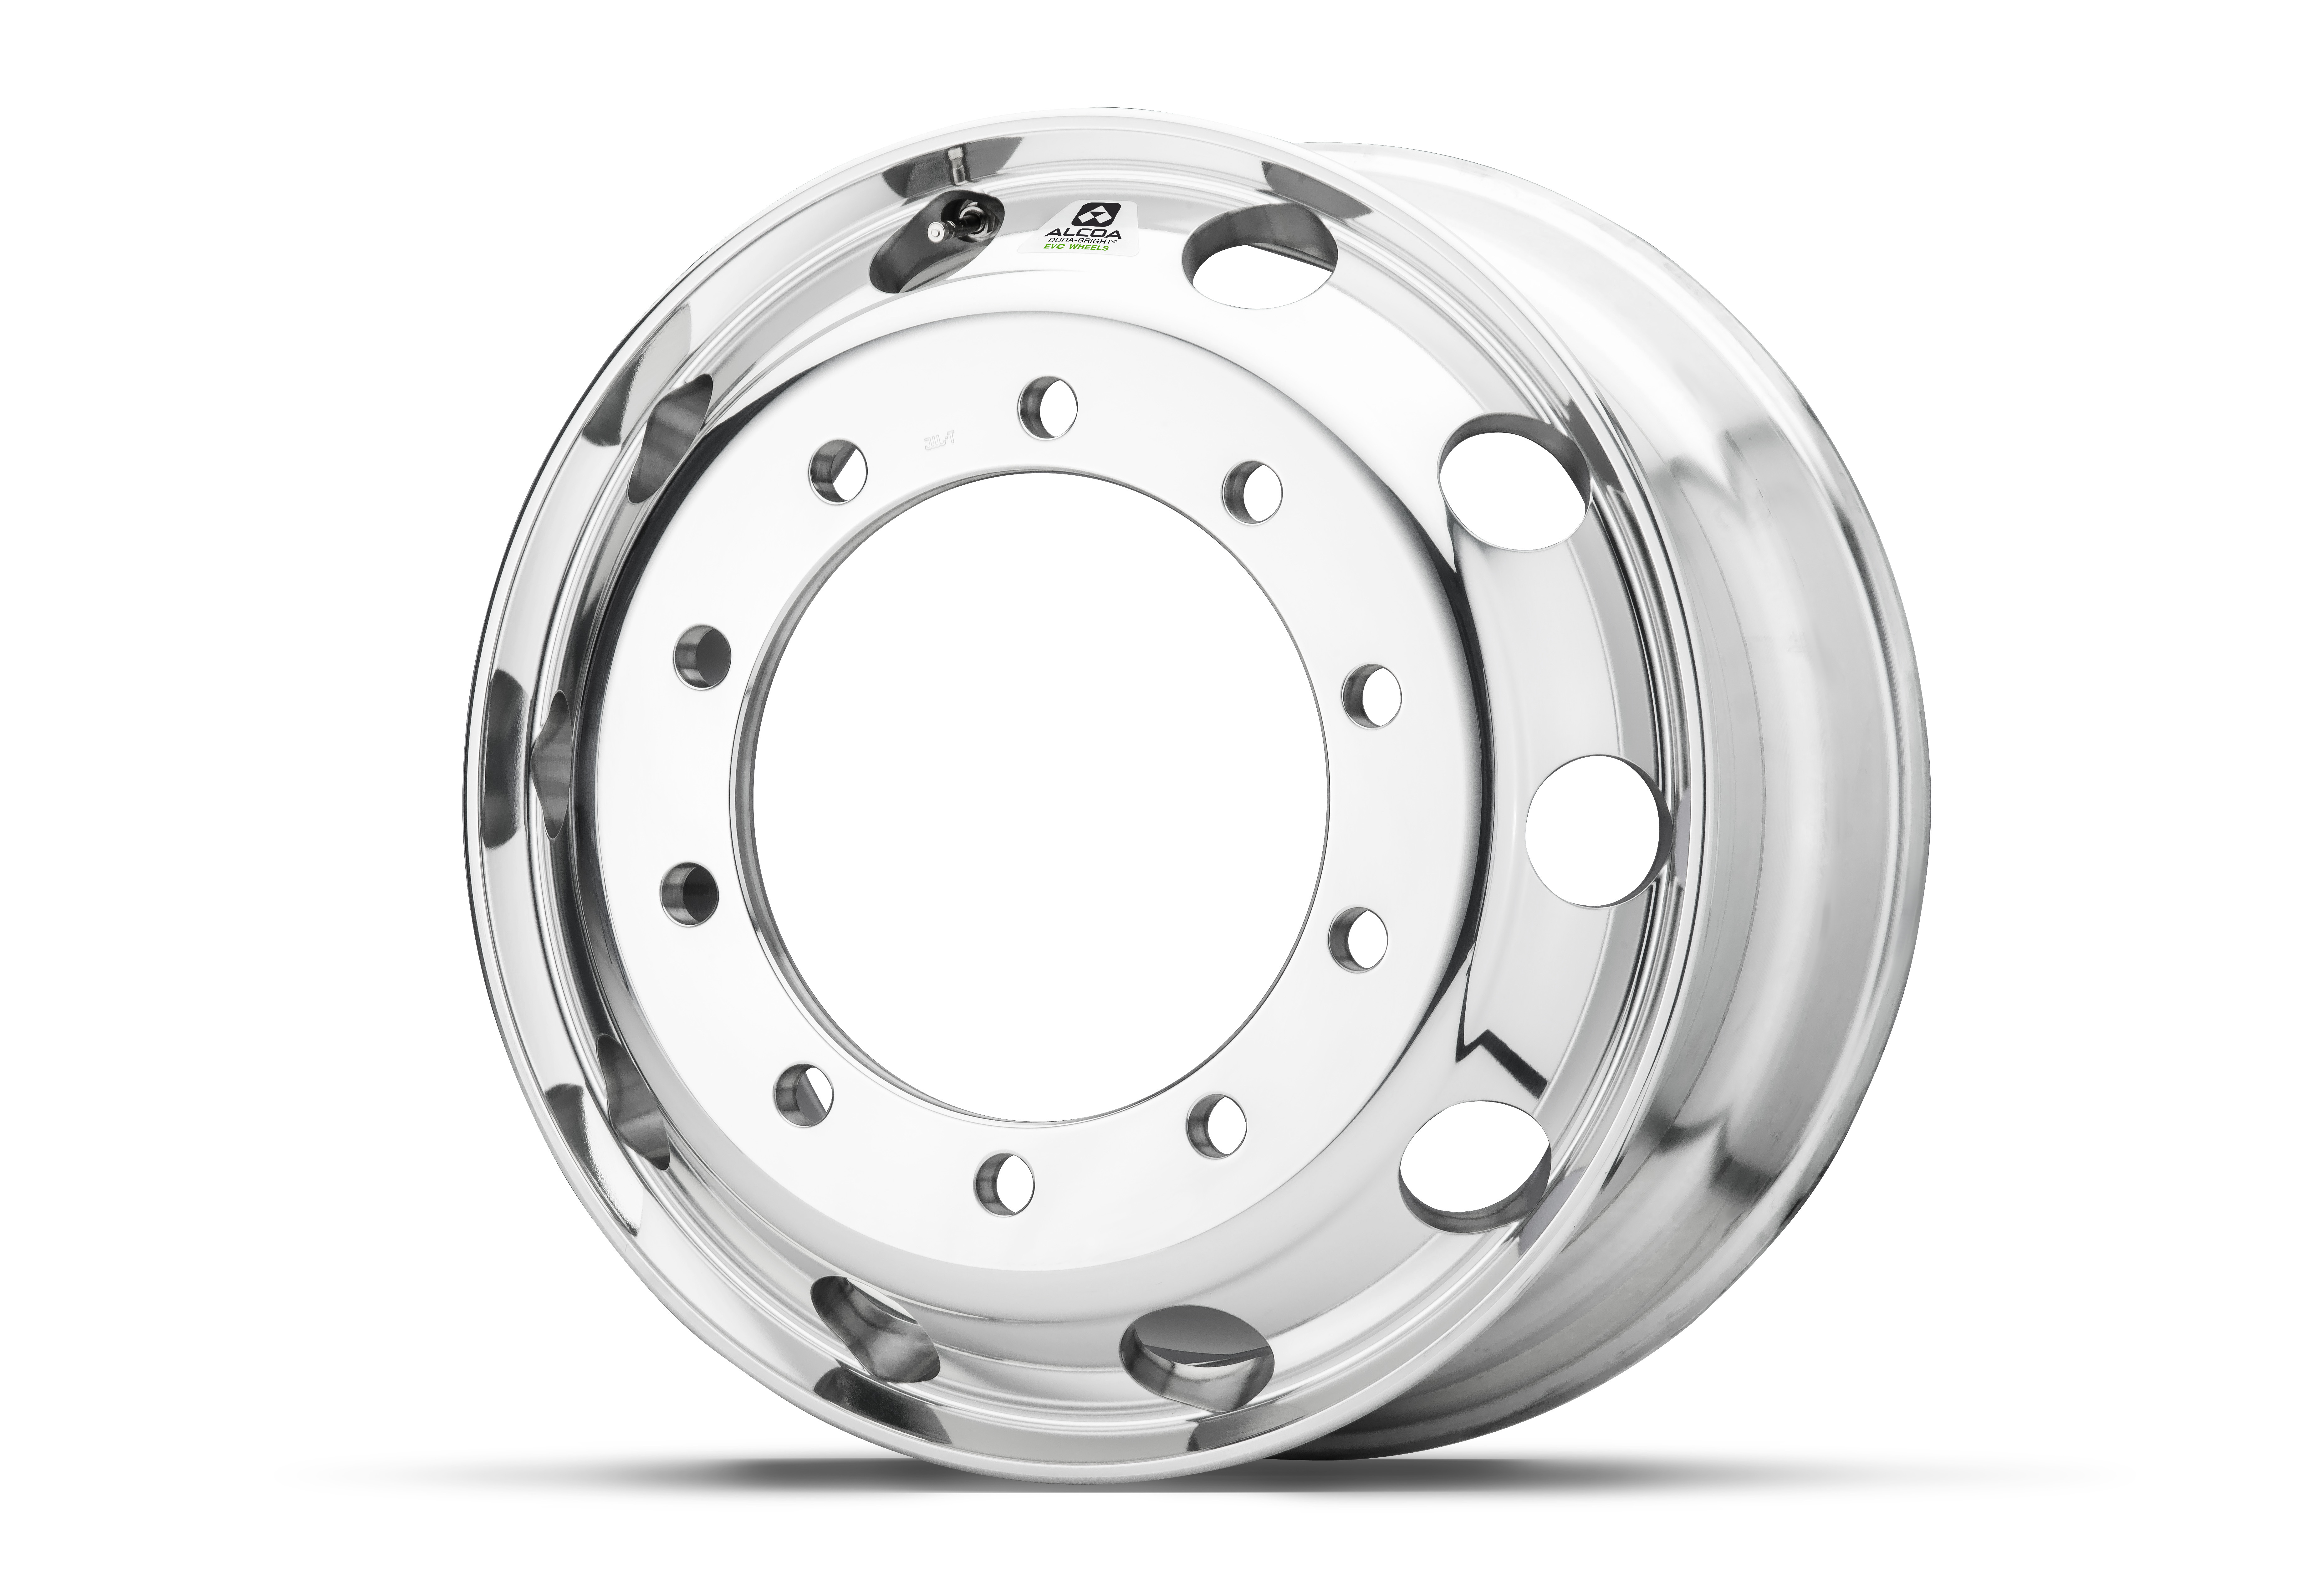 Alcoa, the inventor and global leader of forged aluminum wheels (shown here), announced that it will roll out its lightest heavy-duty truck wheel in Europe to help fleets increase payload and fuel efficiency. (Photo: Business Wire)